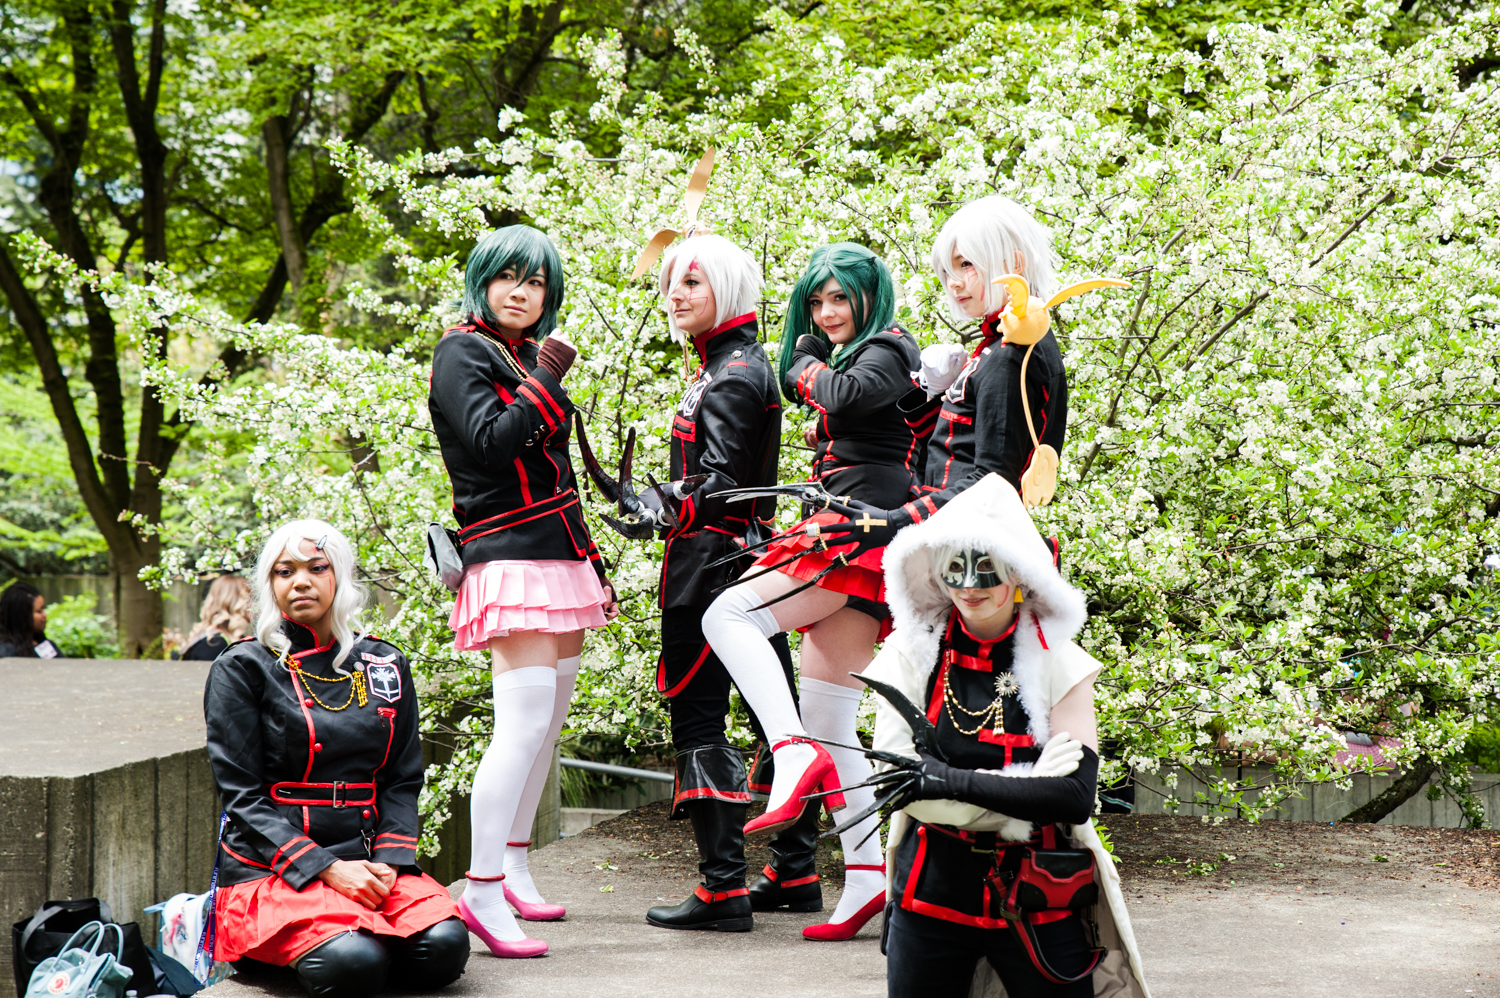 Attendees dress in their creative and fun cosplay for Sakura-Con, the three day anime convention at the Washington State Convention Center. Sakura-Con is the oldest and most well attended anime convention in the Pacific Northwest, and runs through April 21, 2019. (Image: Elizabeth Crook / Seattle Refined)